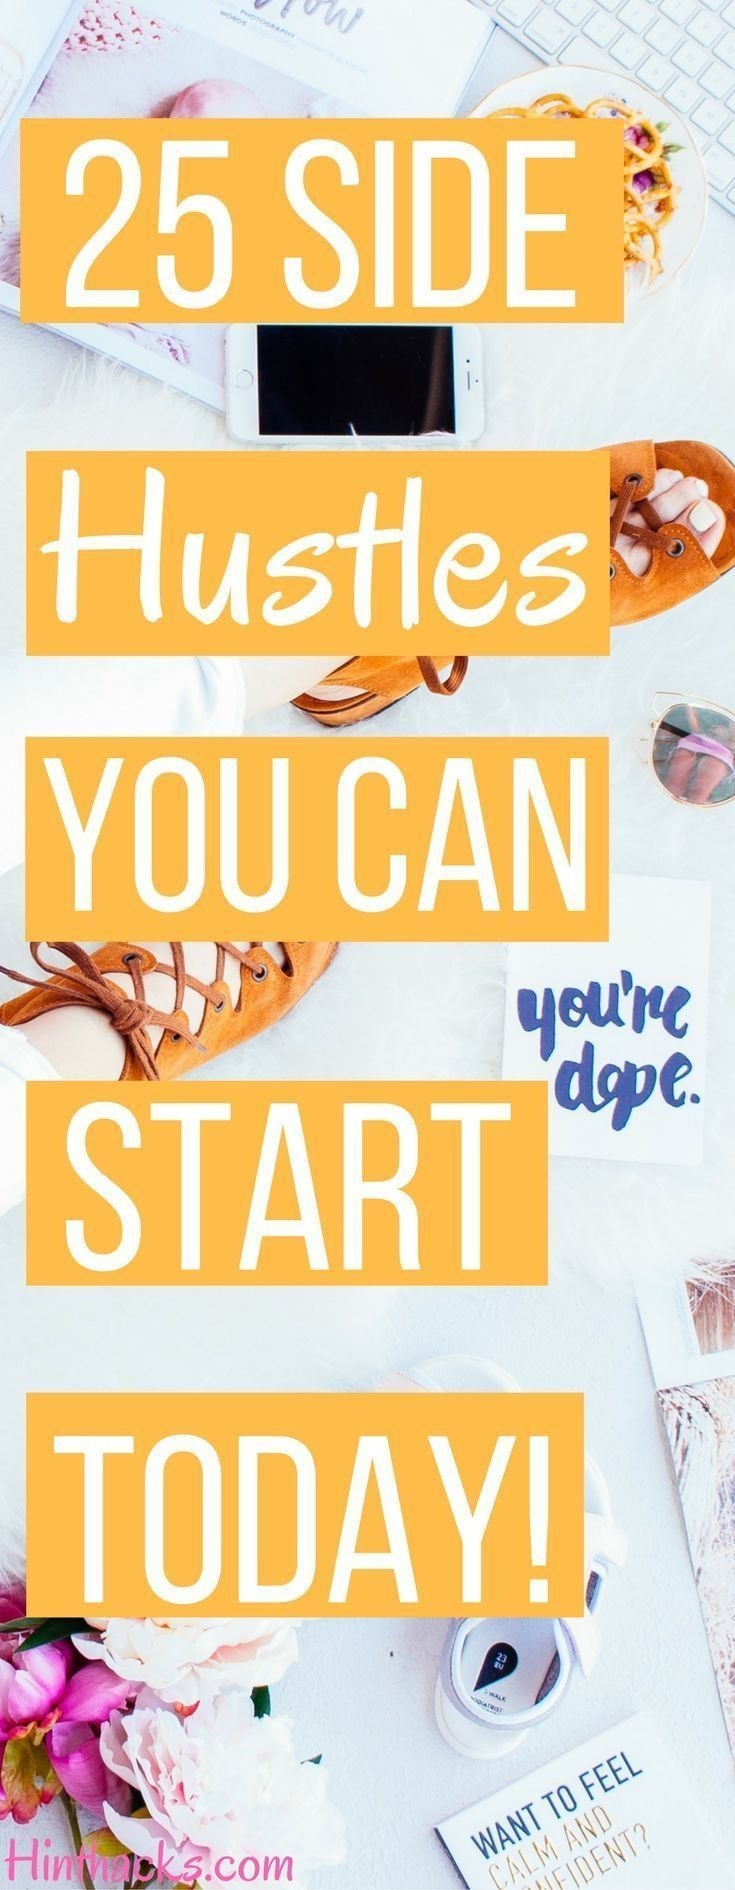 10 Nice Ideas To Make Money On The Side 1246 best side hustles to make money images on pinterest business 1 2020